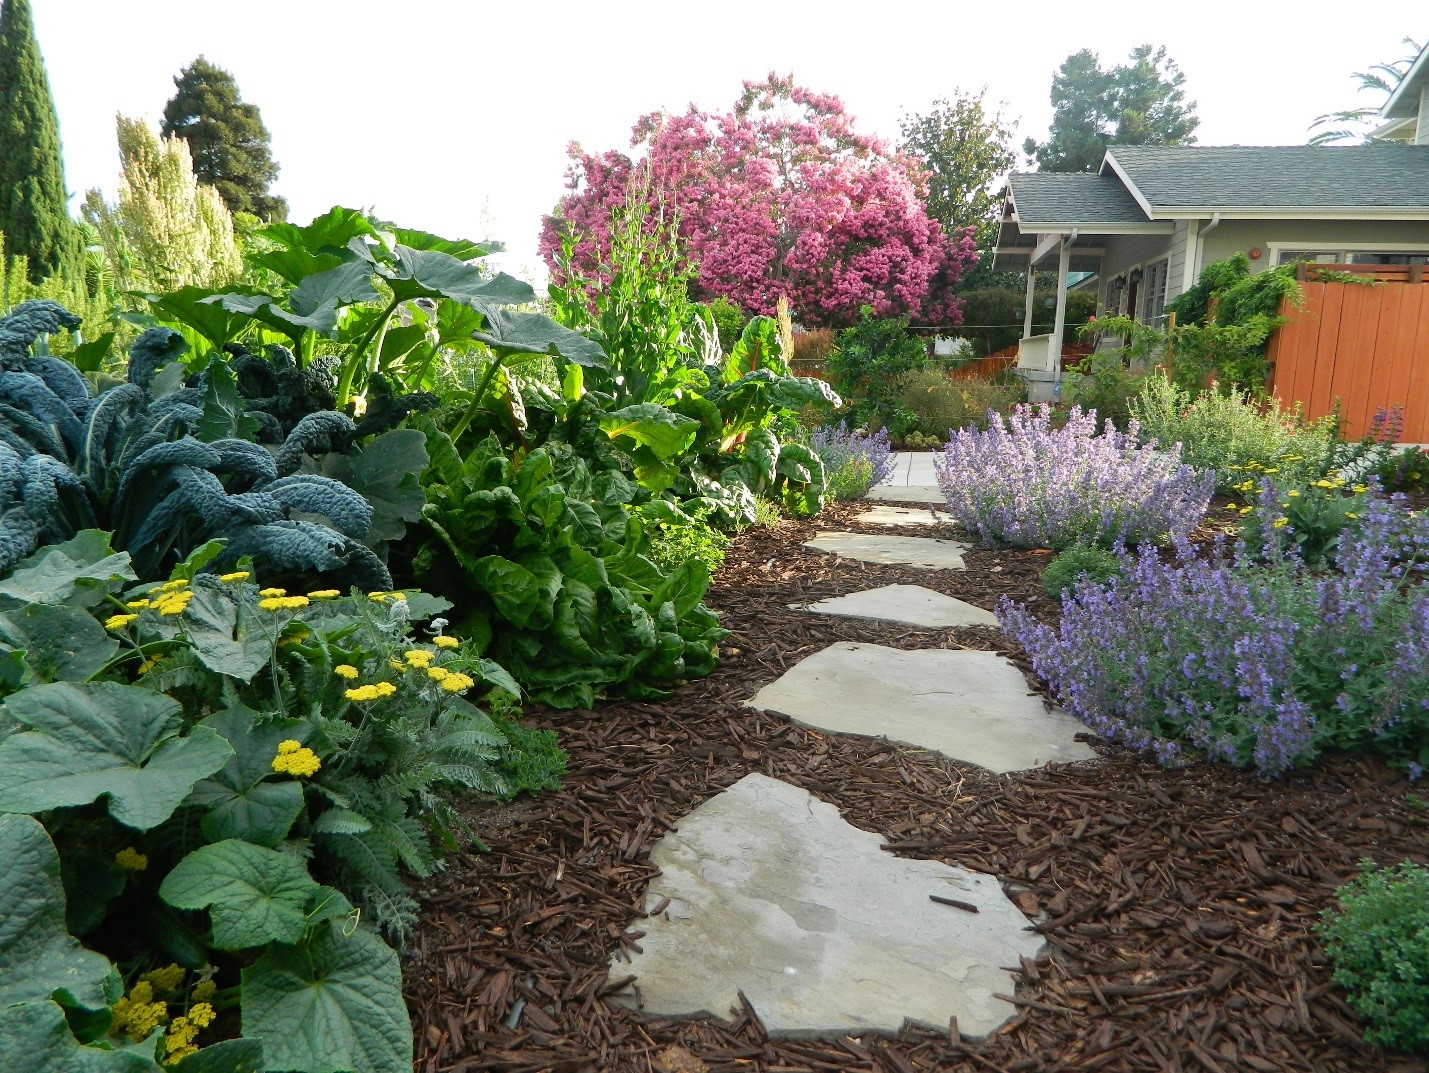 """Here is a interplanted veggie garden using """"Keyhole"""" planter beds loaded with perennial edibles like kale, chard, thyme, and oregano. Growing different size plants next to each other uses the planting space most efficiently as they can fill out their own niches."""